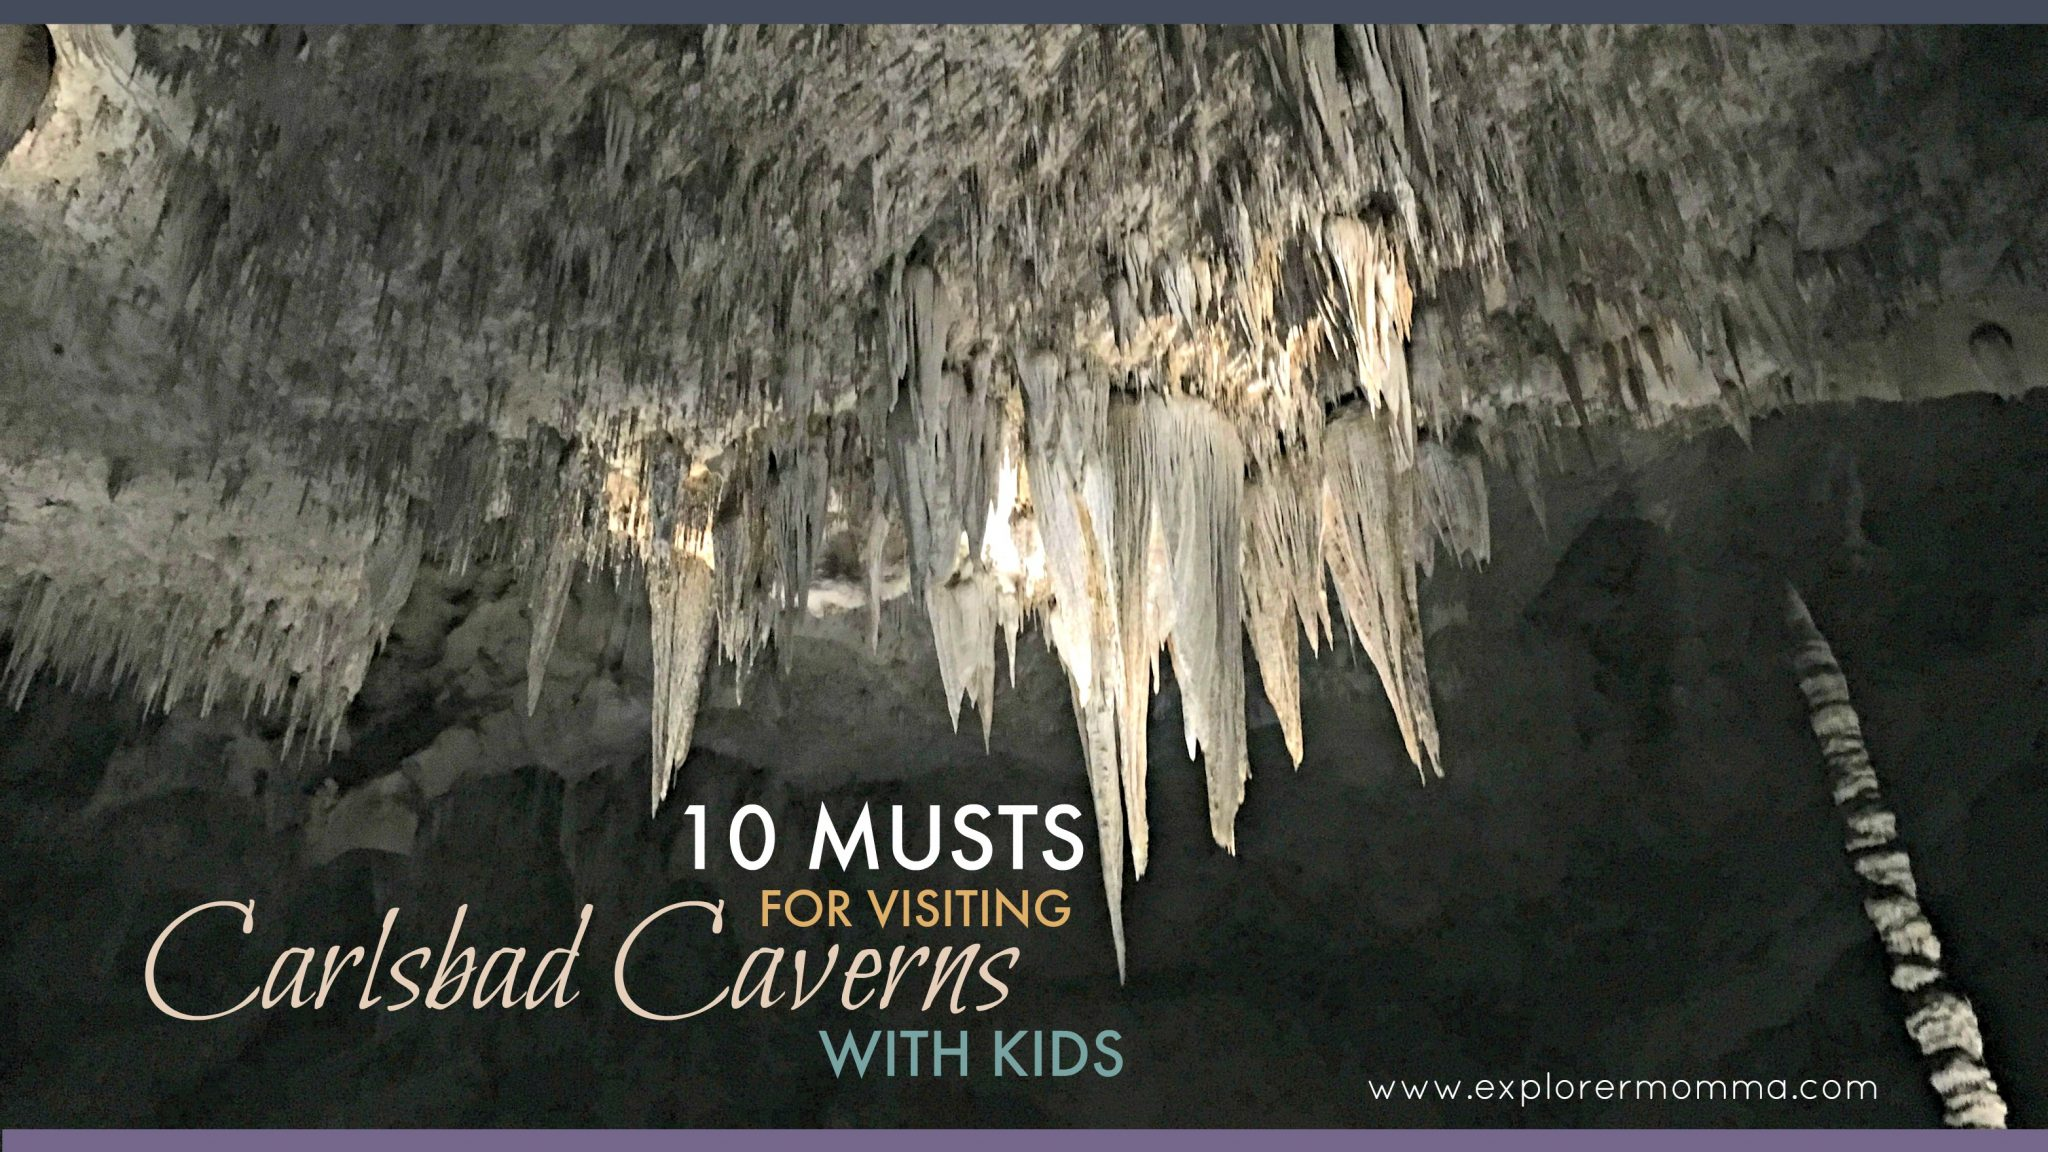 10 Musts for visiting Carlsbad Caverns National Park with kids